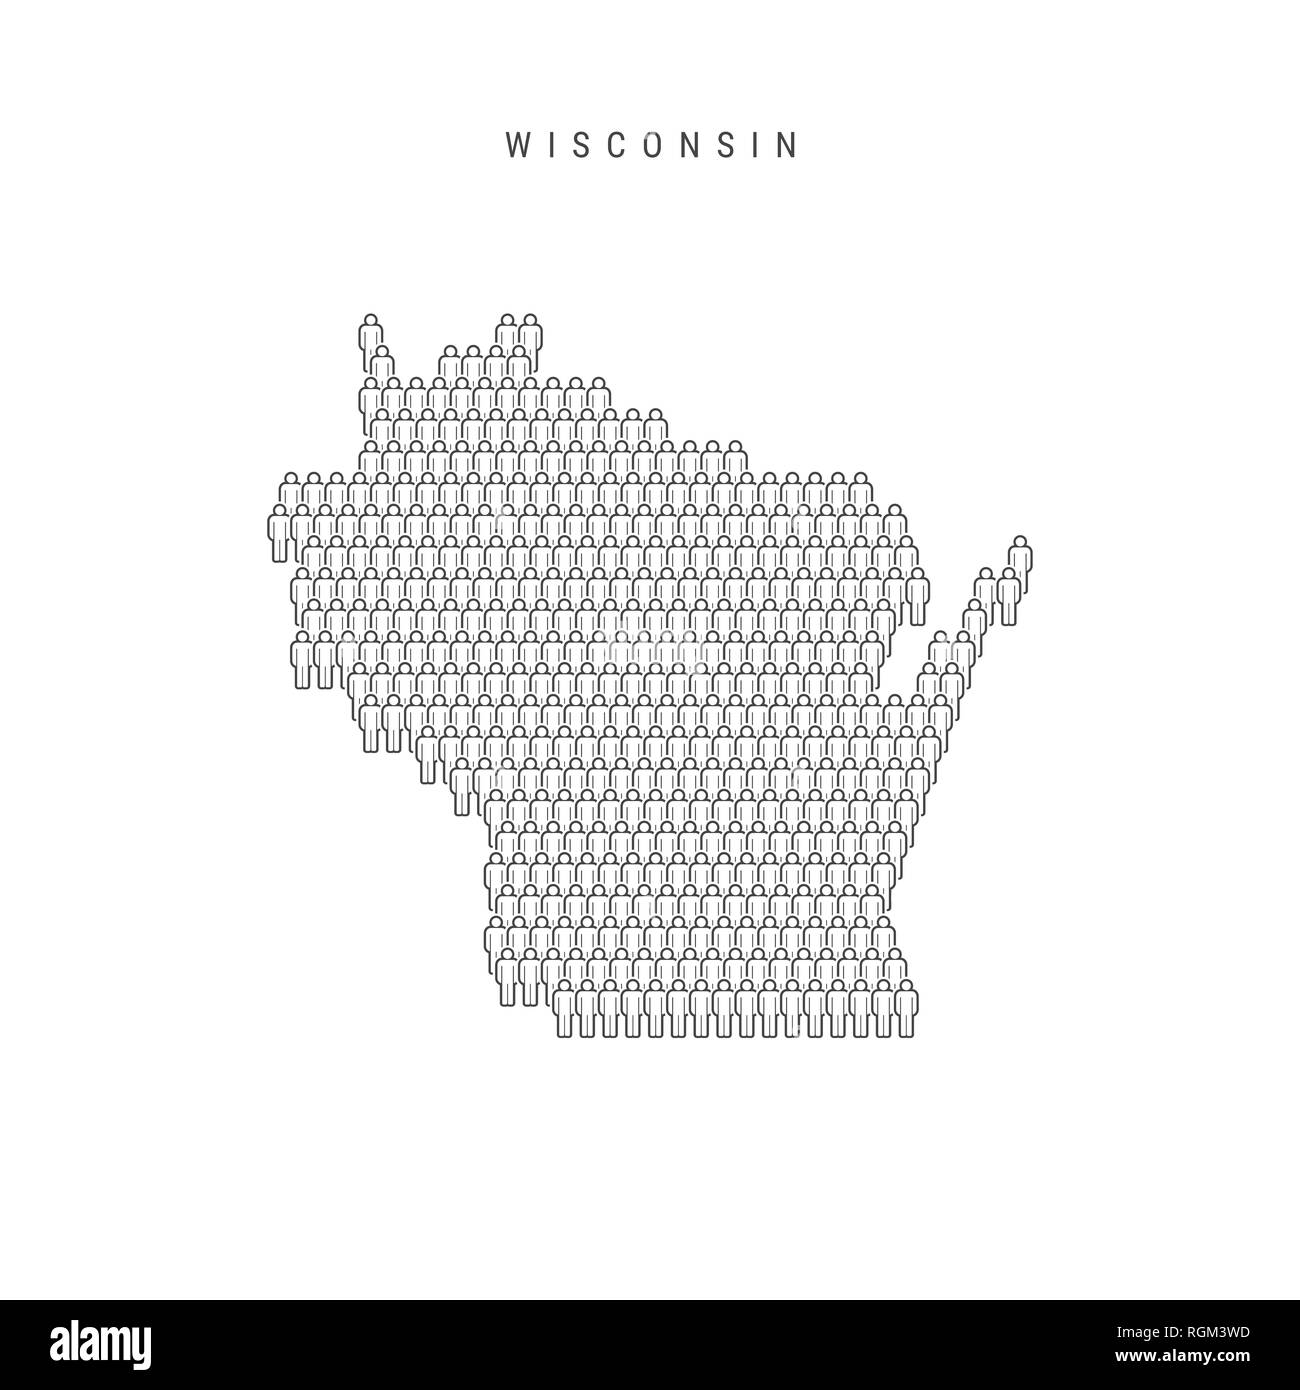 People Map of Wisconsin, US State. Stylized Silhouette, People Crowd in the Shape of a Map of Wisconsin. Wisconsin Population. Illustration Isolated o Stock Photo